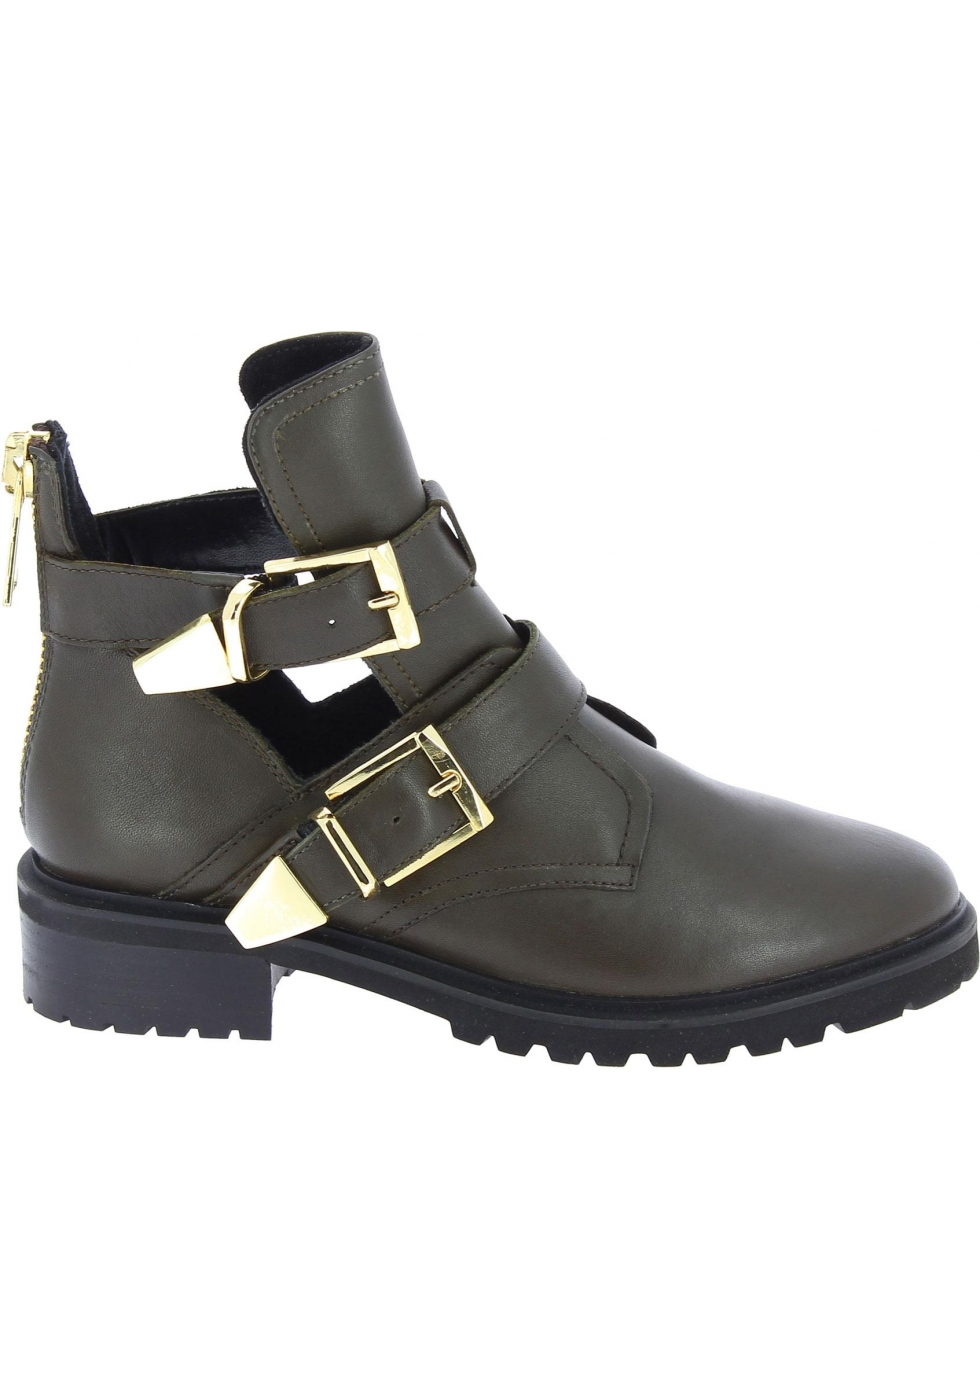 991425f277a Steve Madden Women's ankle boots with buckles and zip in dark brown ...